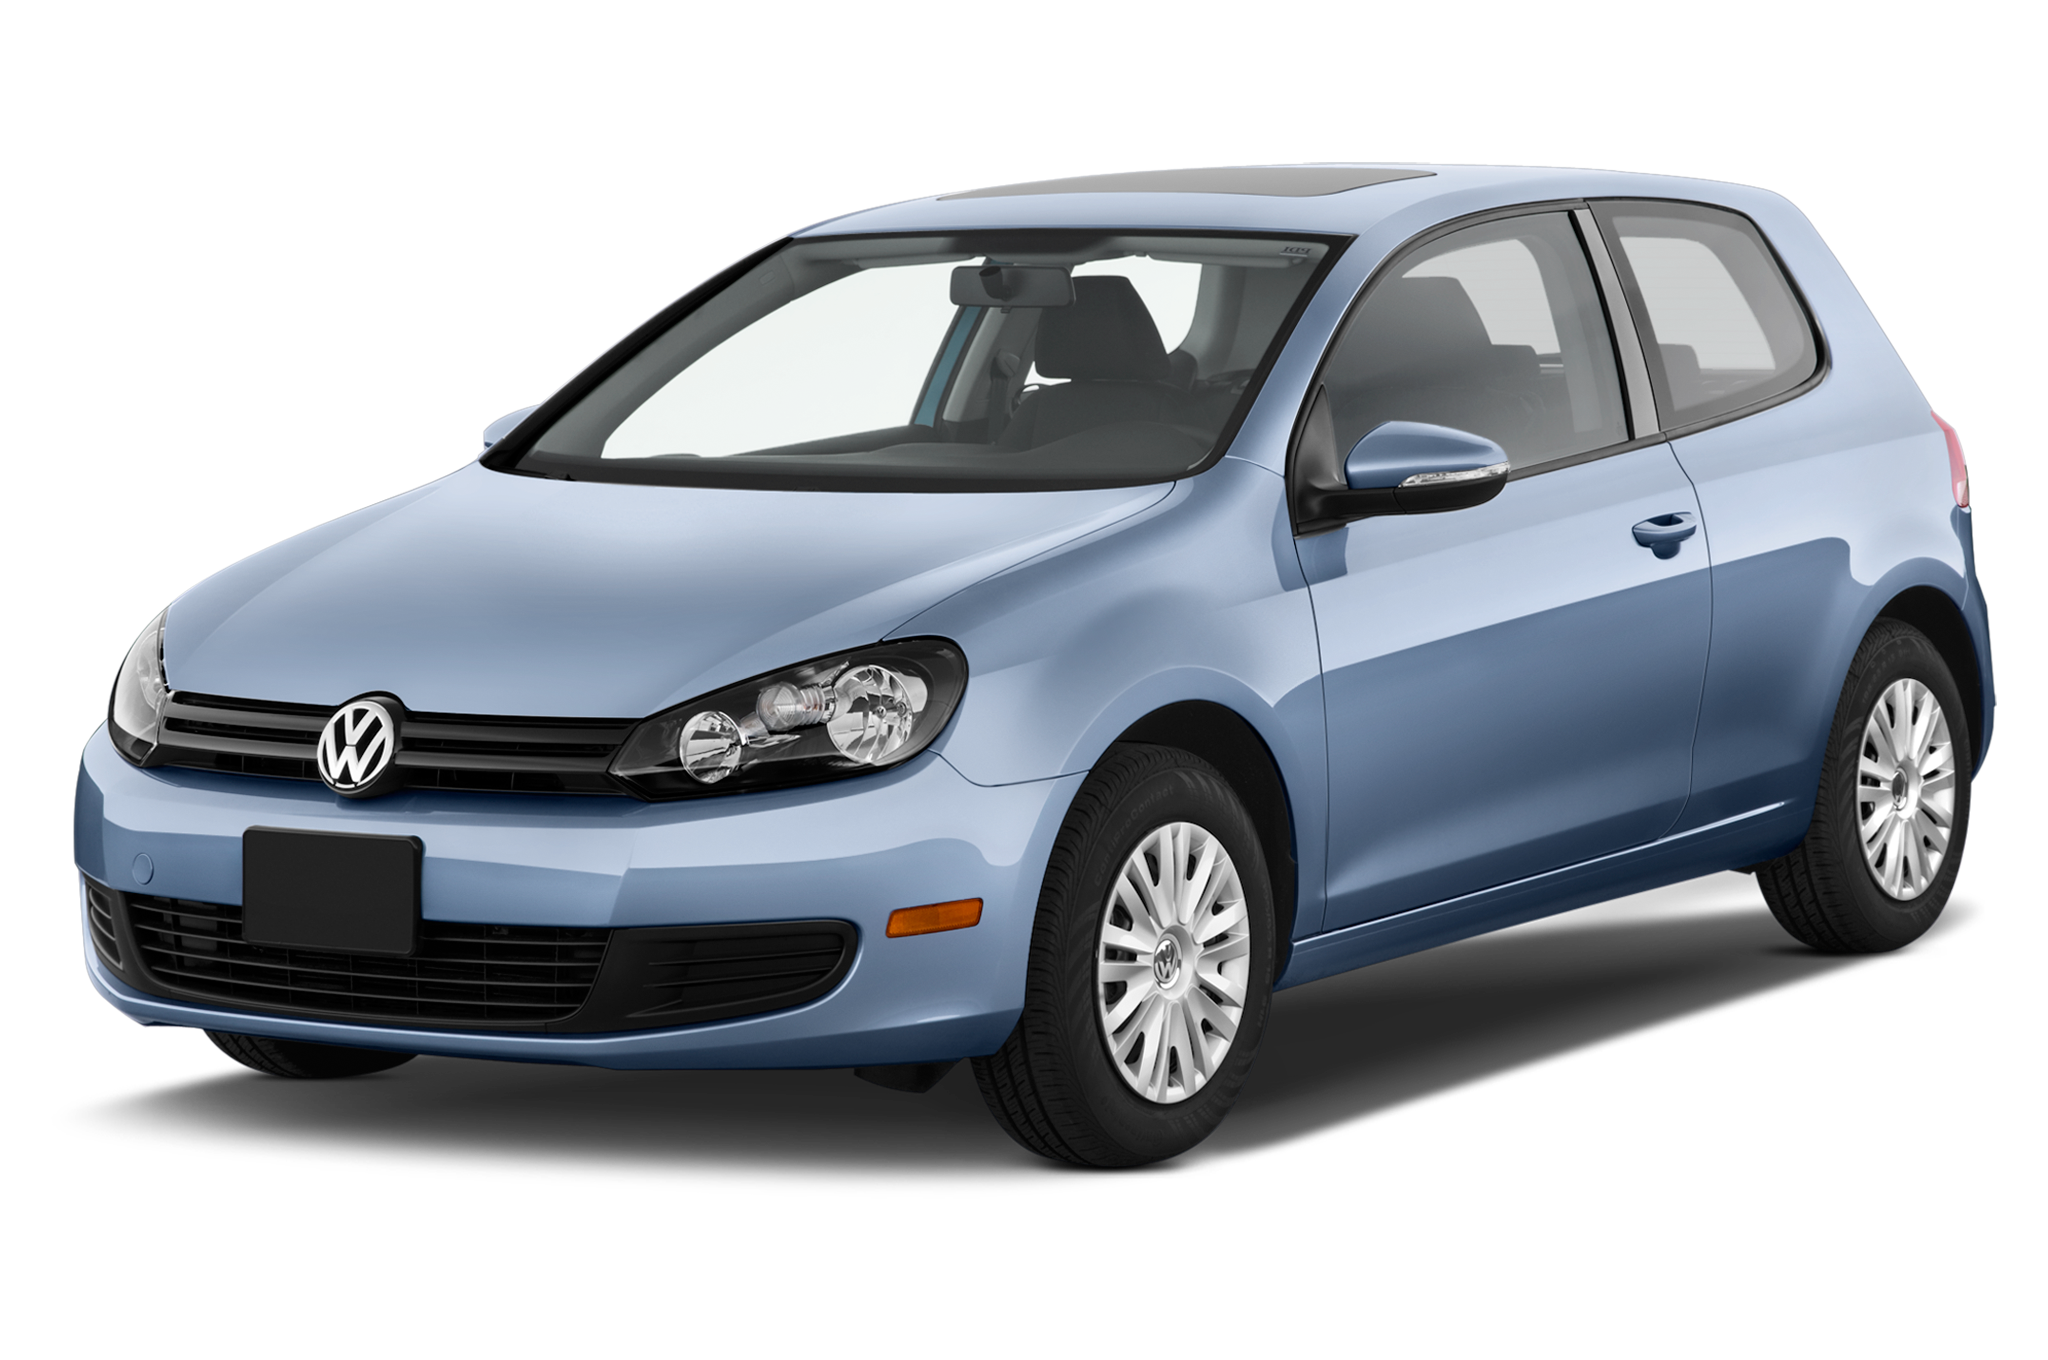 2012 Volkswagen Golf #17